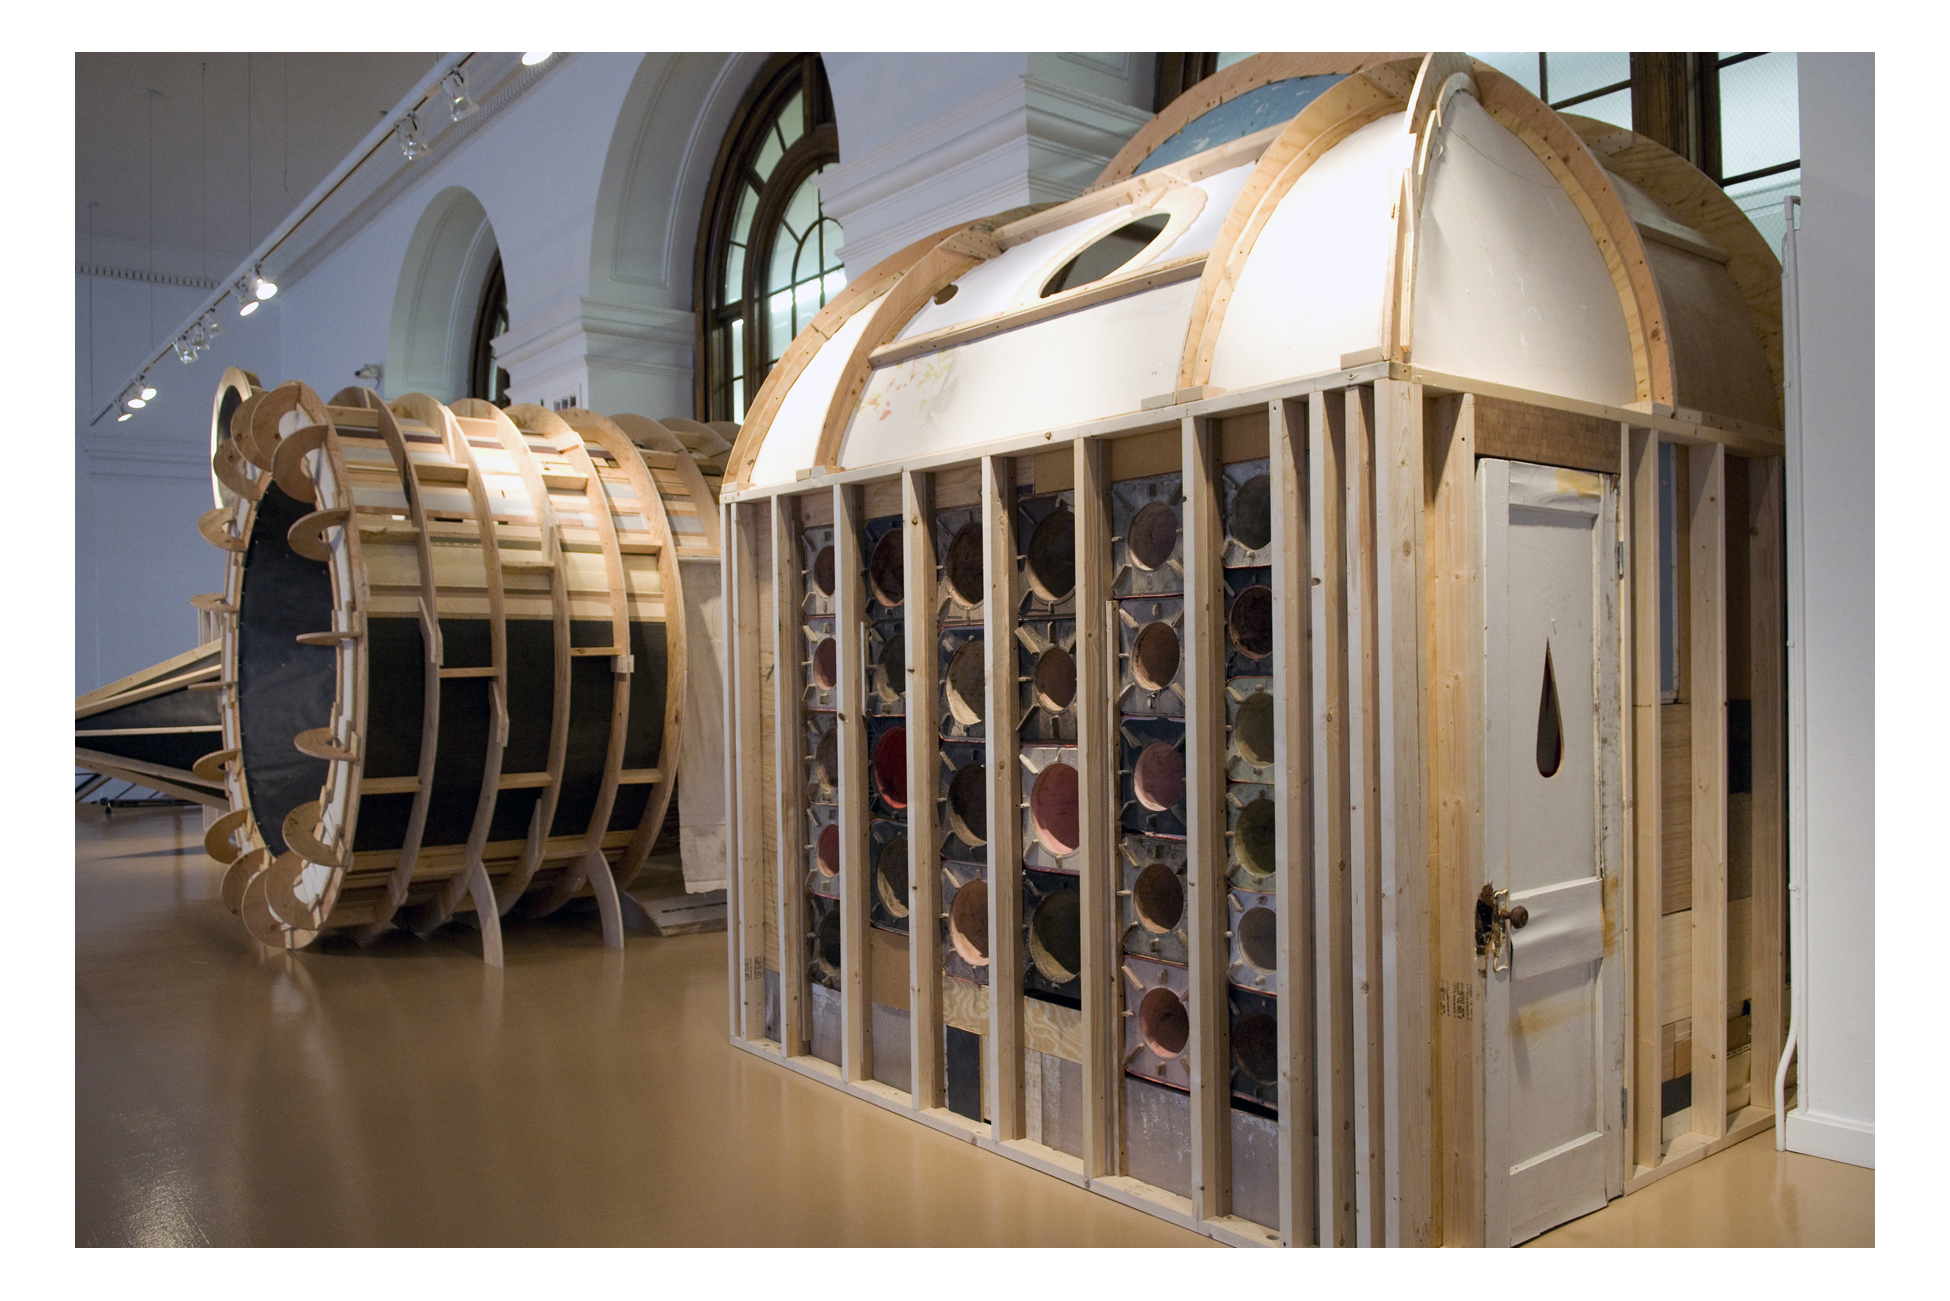 Juan Angel Chavez, Listening Chambers, 2010, found materials, each 12 x 12 x 12 feet